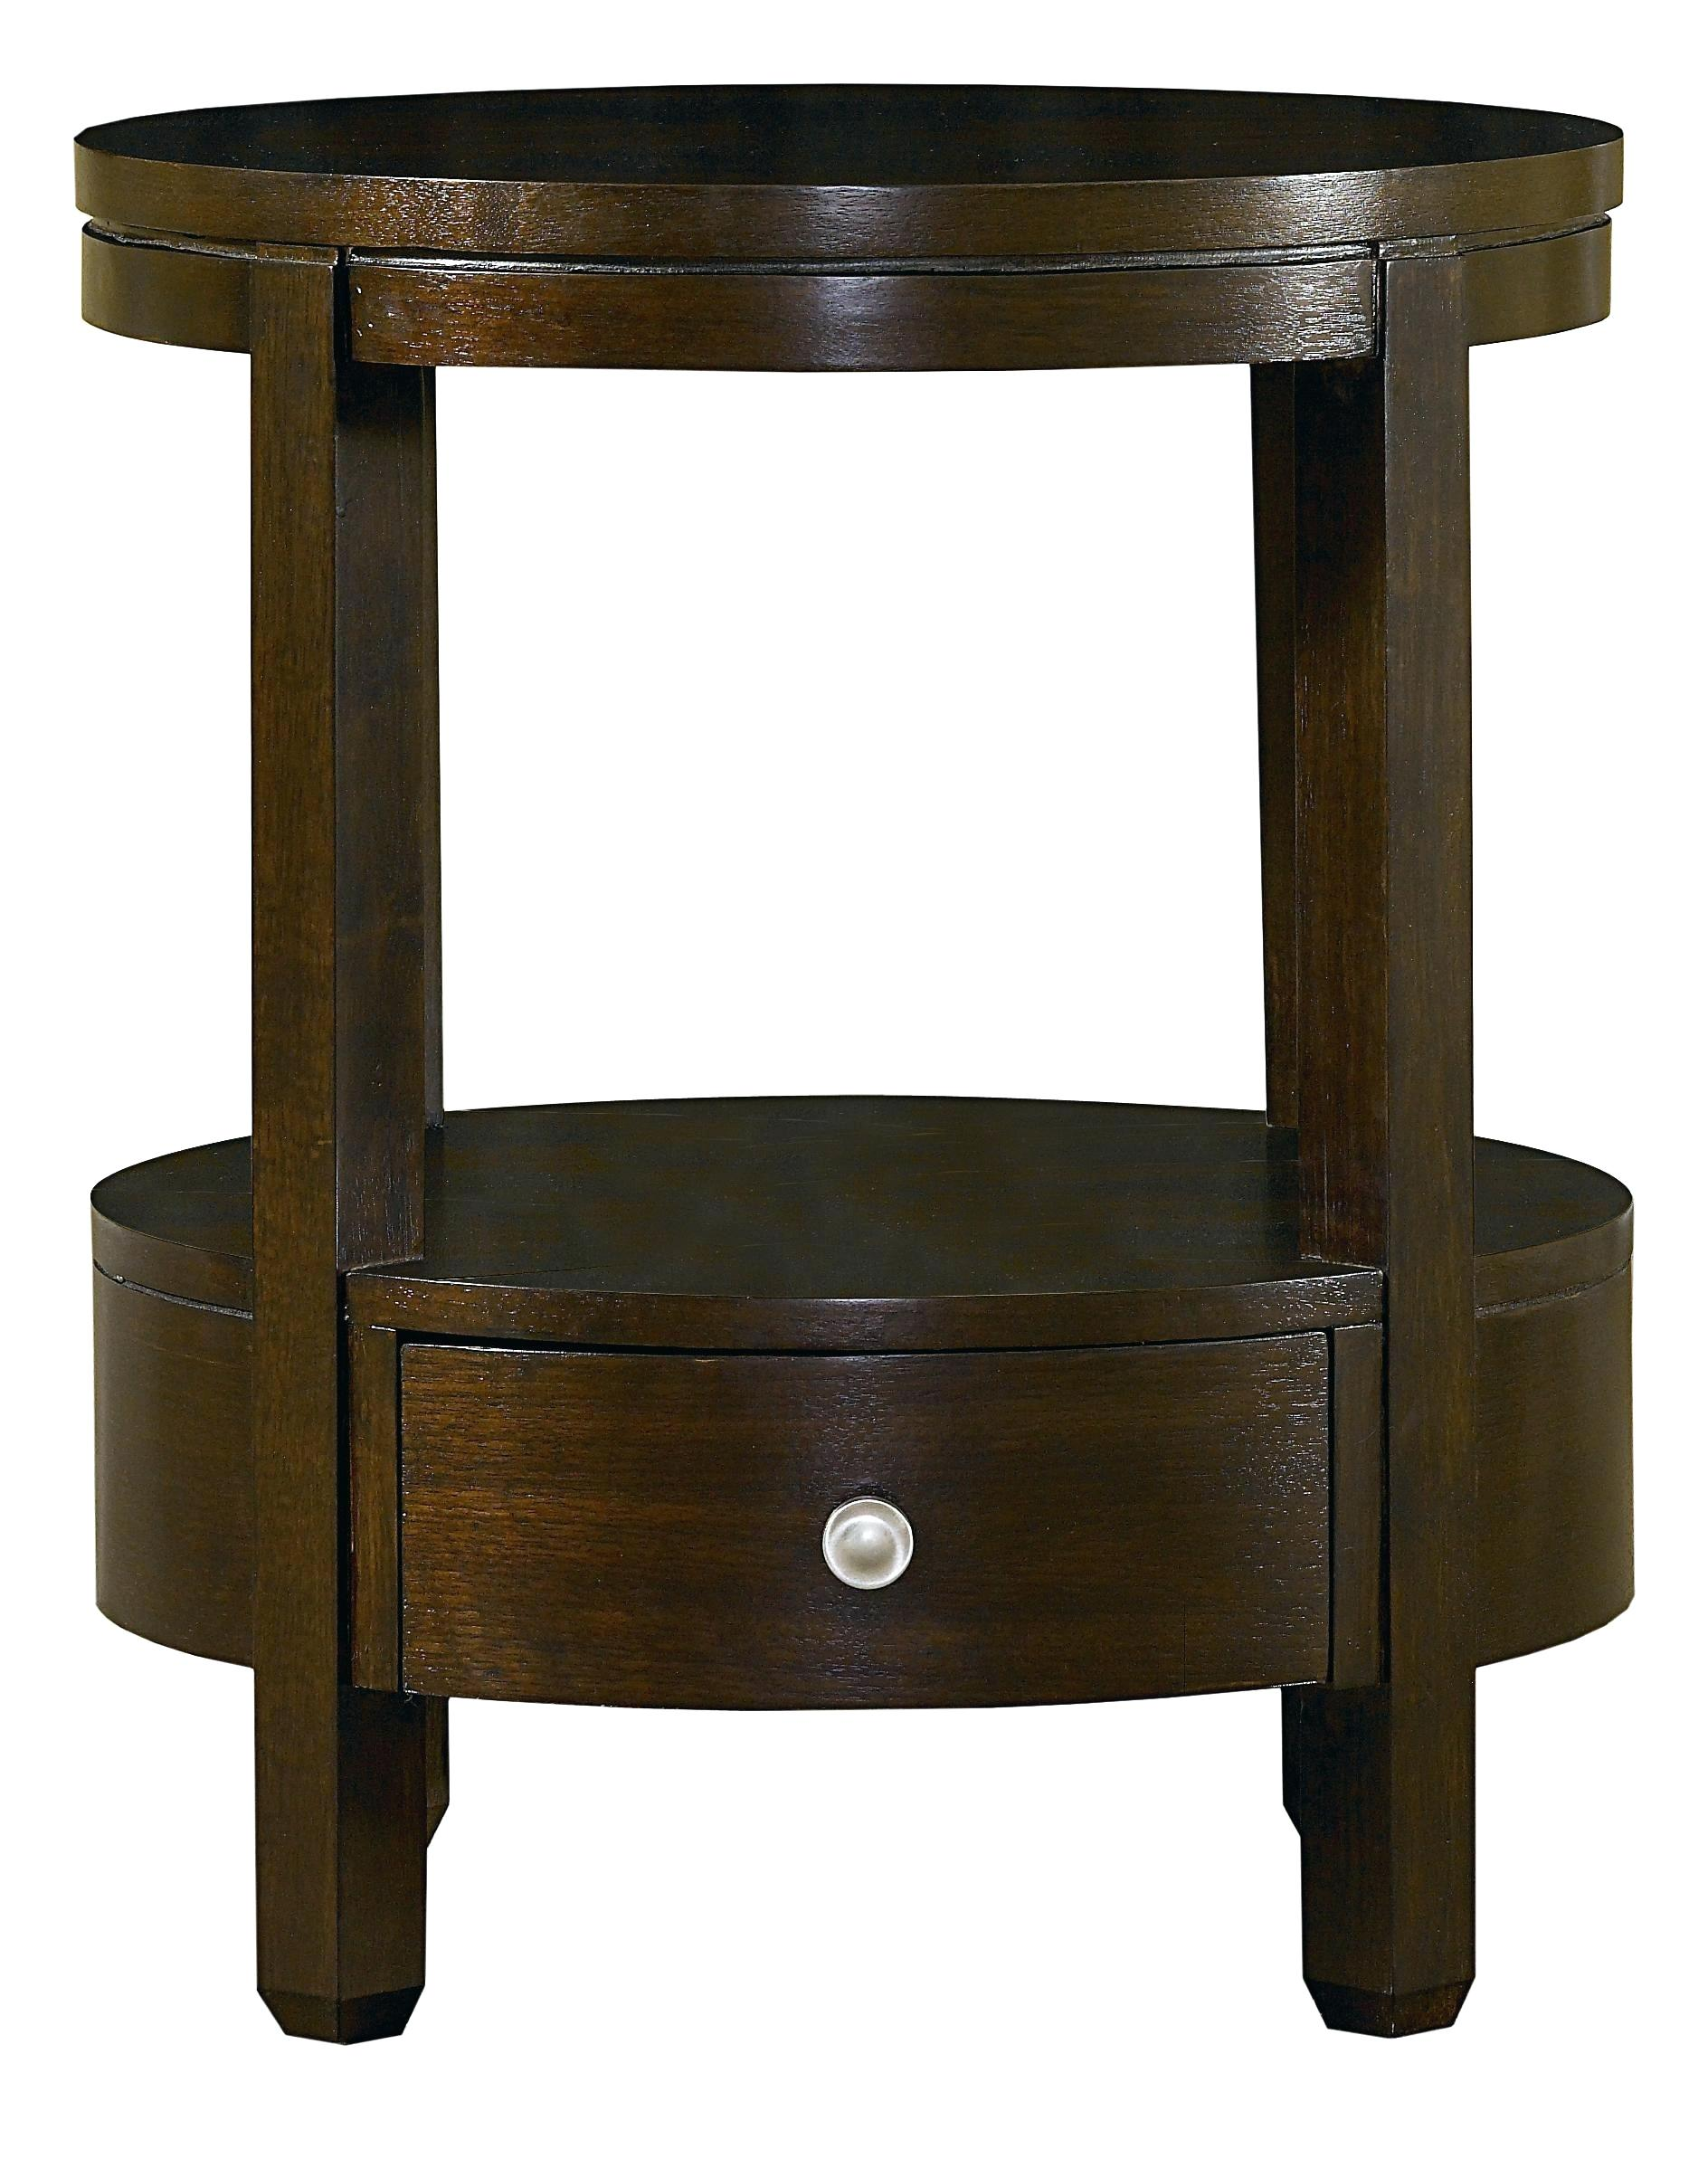 round accent tables target bouquinerie park table for foyer antique small dining room storage furniture iron beds cherry wood and chairs razer mouse ouroboros wine rack cabinet